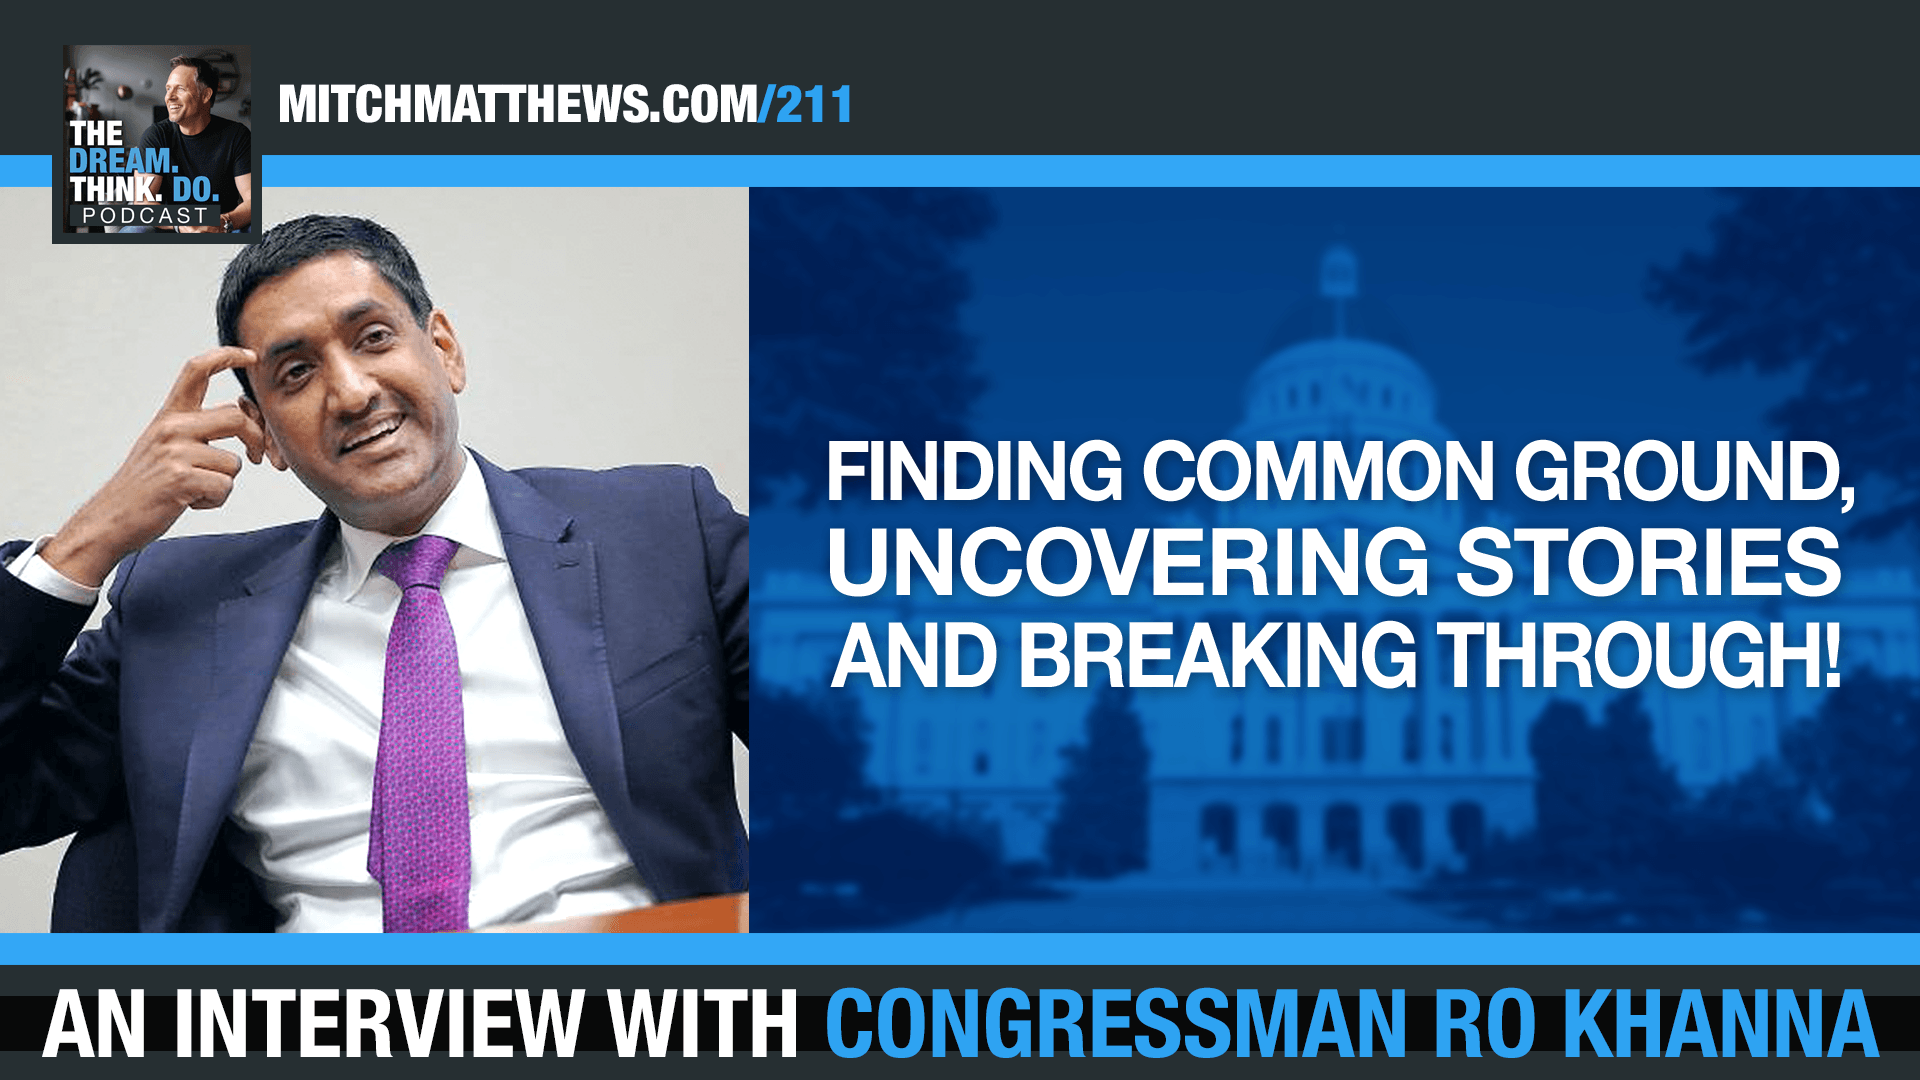 Finding The Common Ground. A Conversation with Congressman Ro Khanna